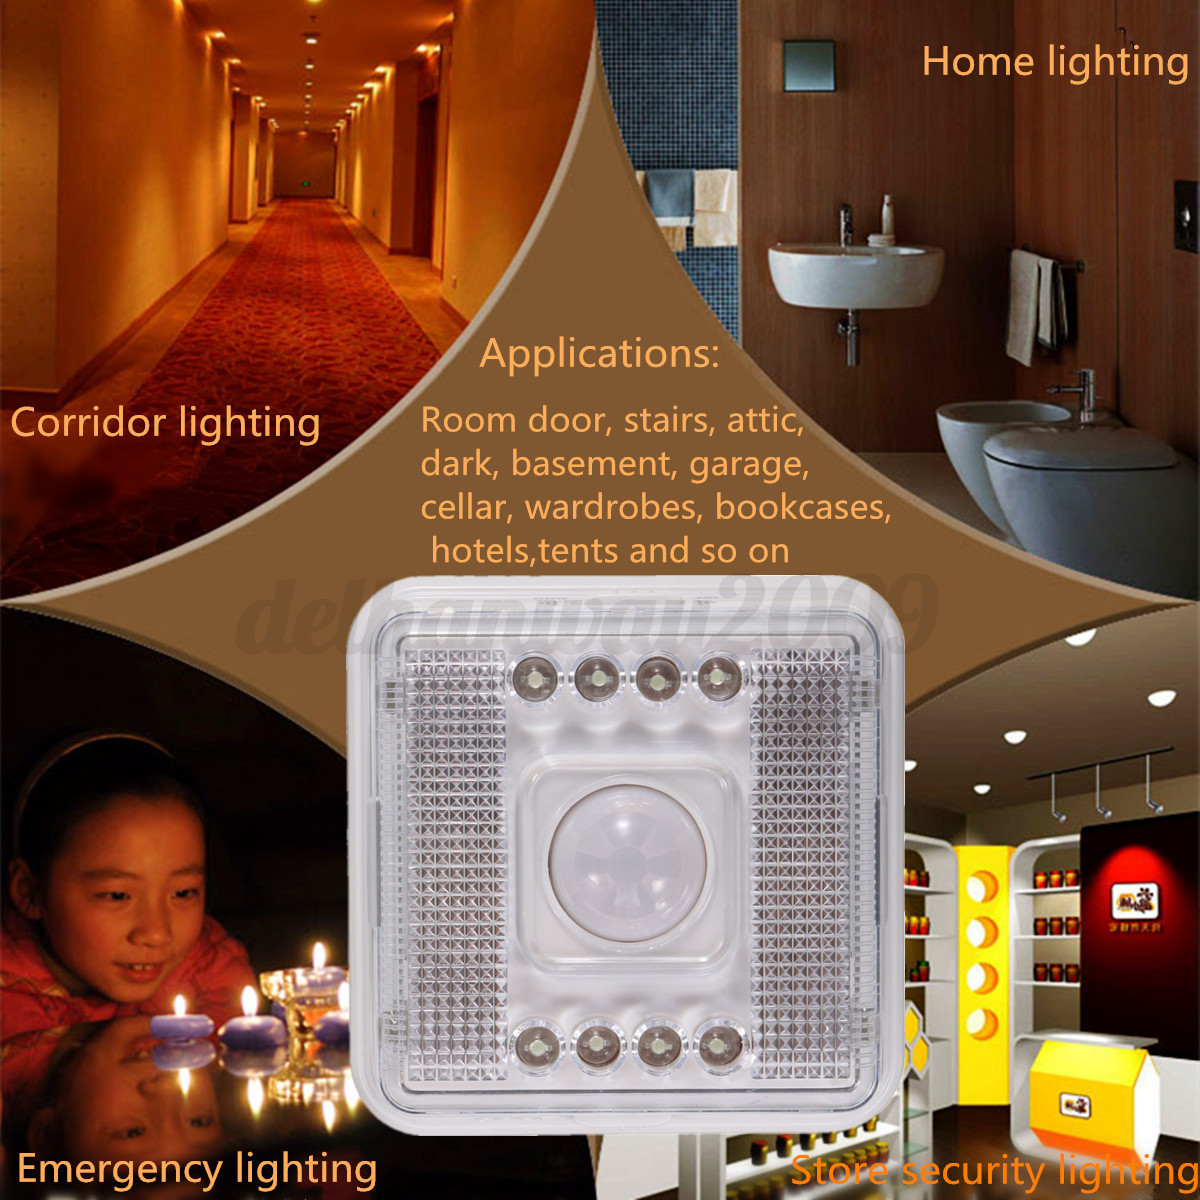 8 led automatic pir motion sensor stair hall night light. Black Bedroom Furniture Sets. Home Design Ideas